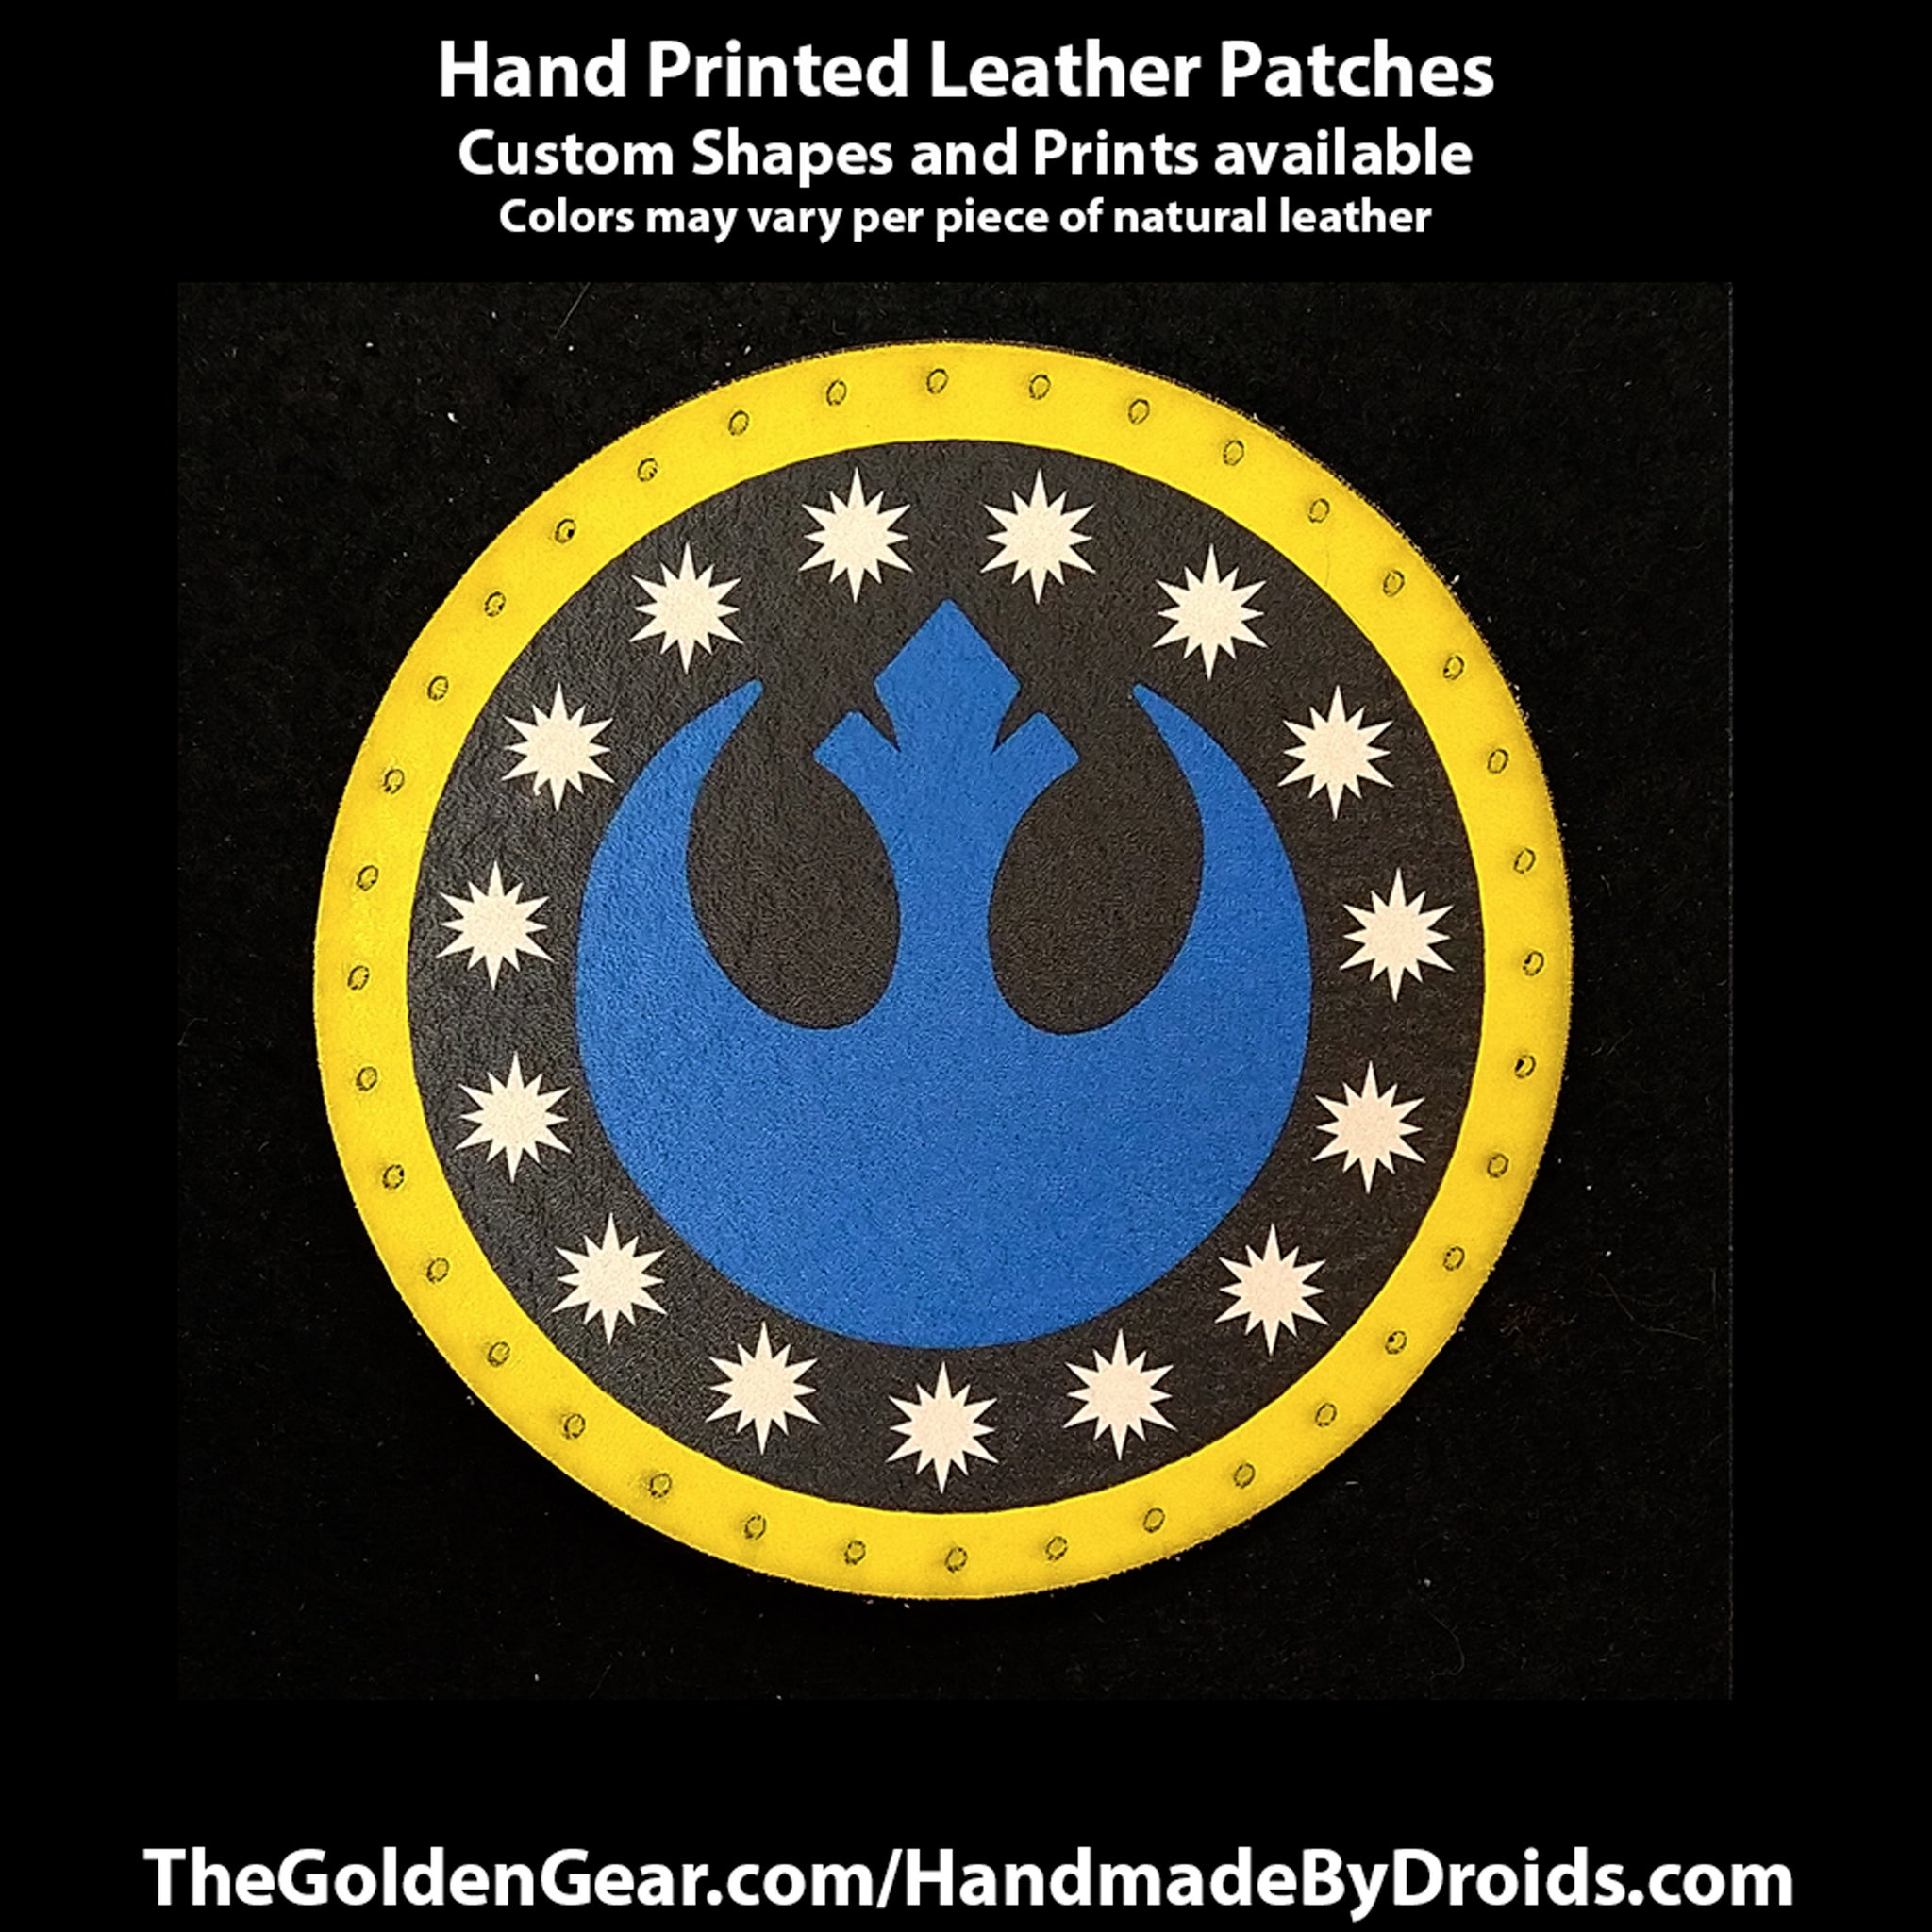 New Republic (Star Wars) 3.8 inch Leather Patch